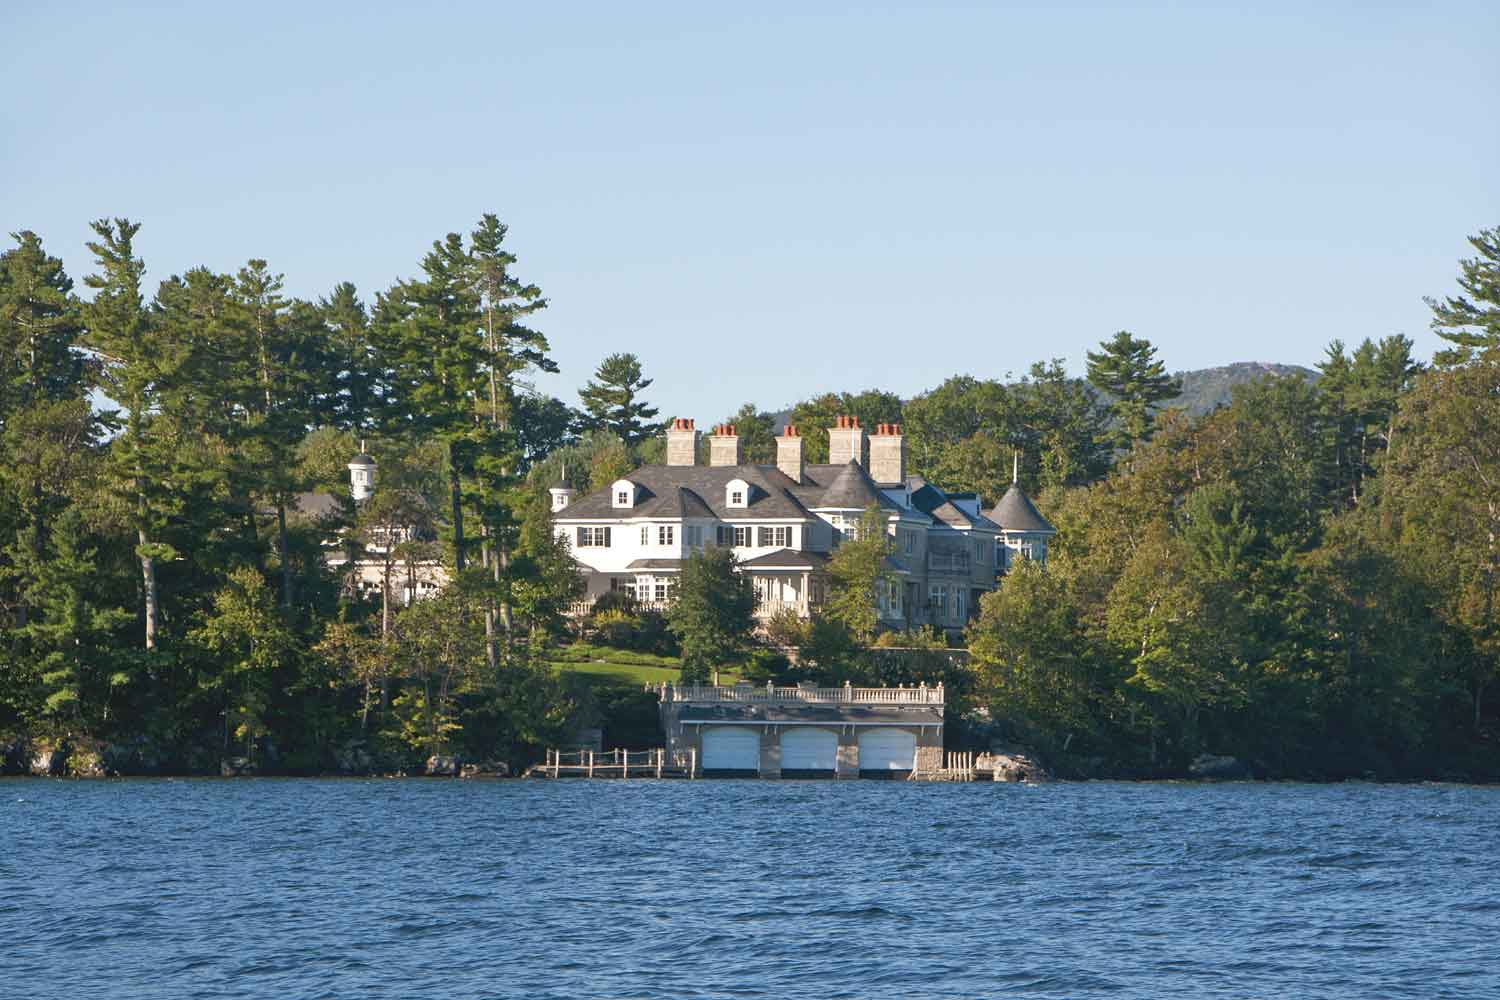 <b>Alton, New Hampshire</b><br/><i>7 Bedrooms, 38,196 sq. ft.</i><br/>Seven-bedroom estate with lake and mountain views